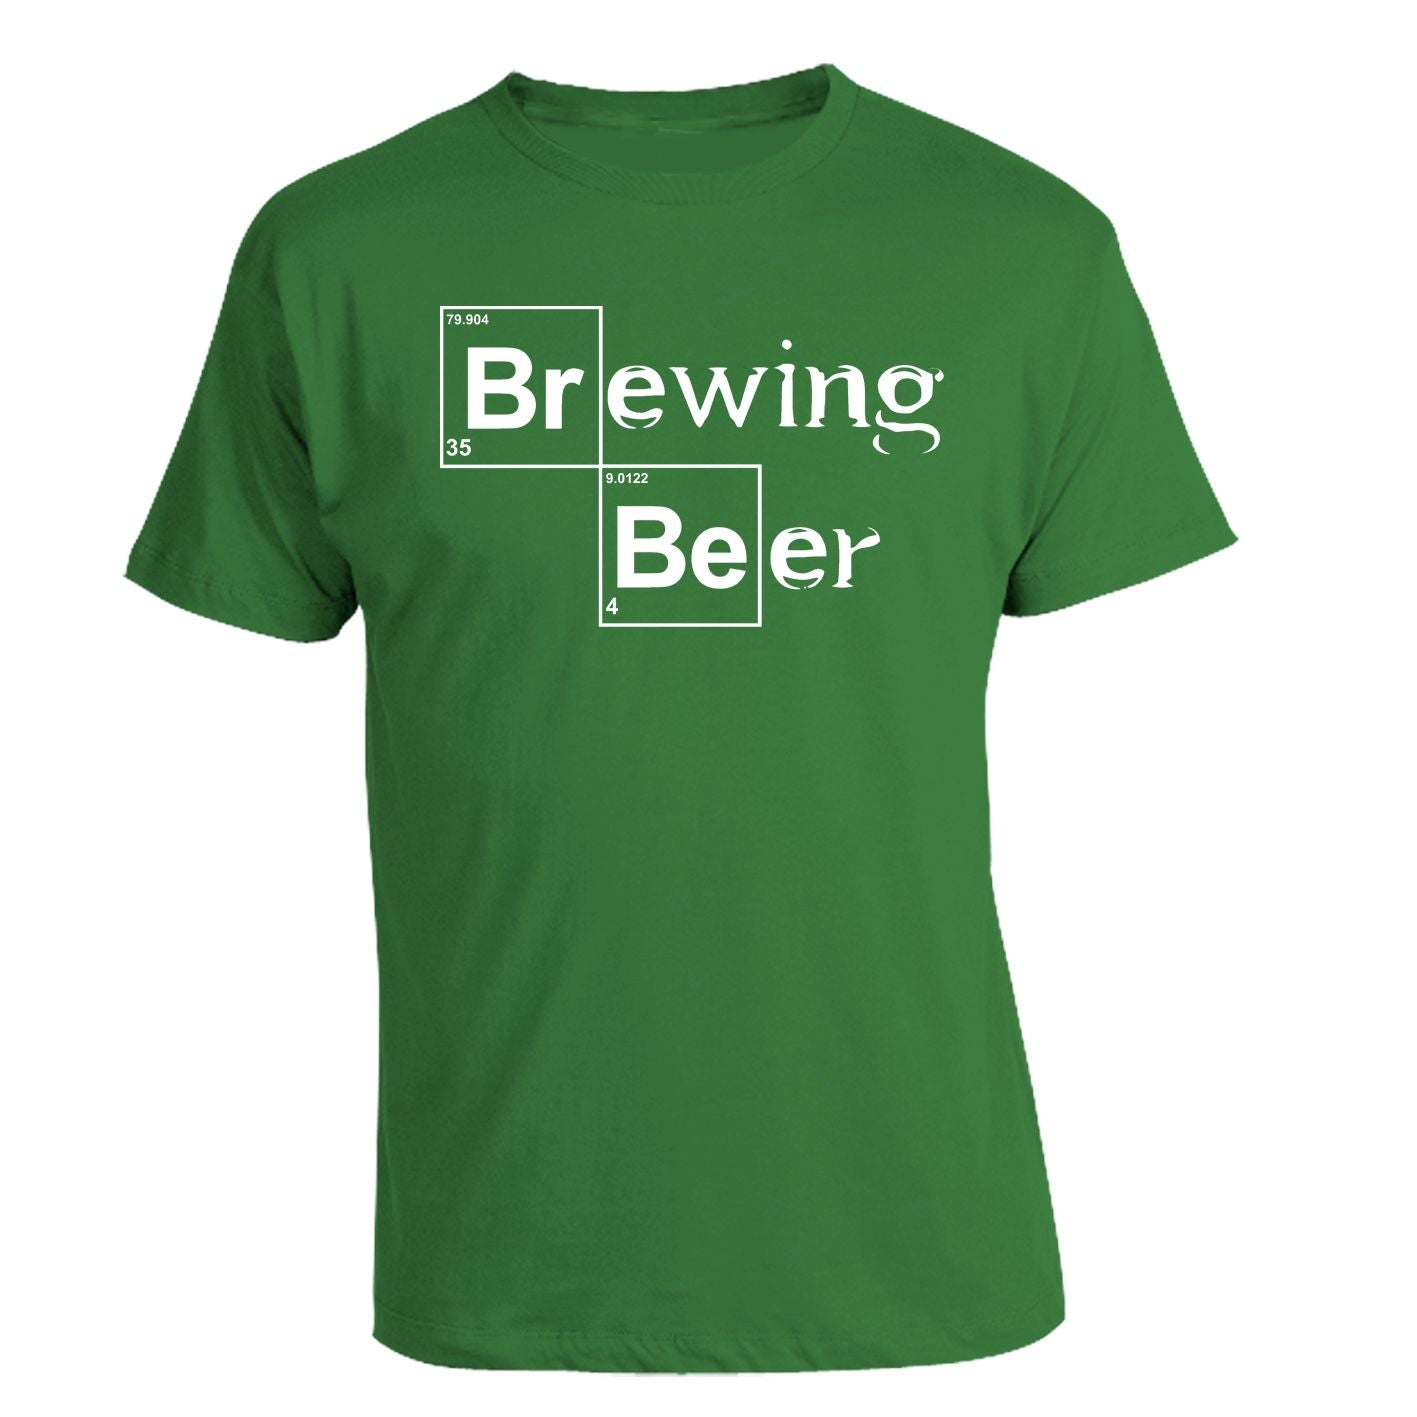 Brewing Beer Tshirt